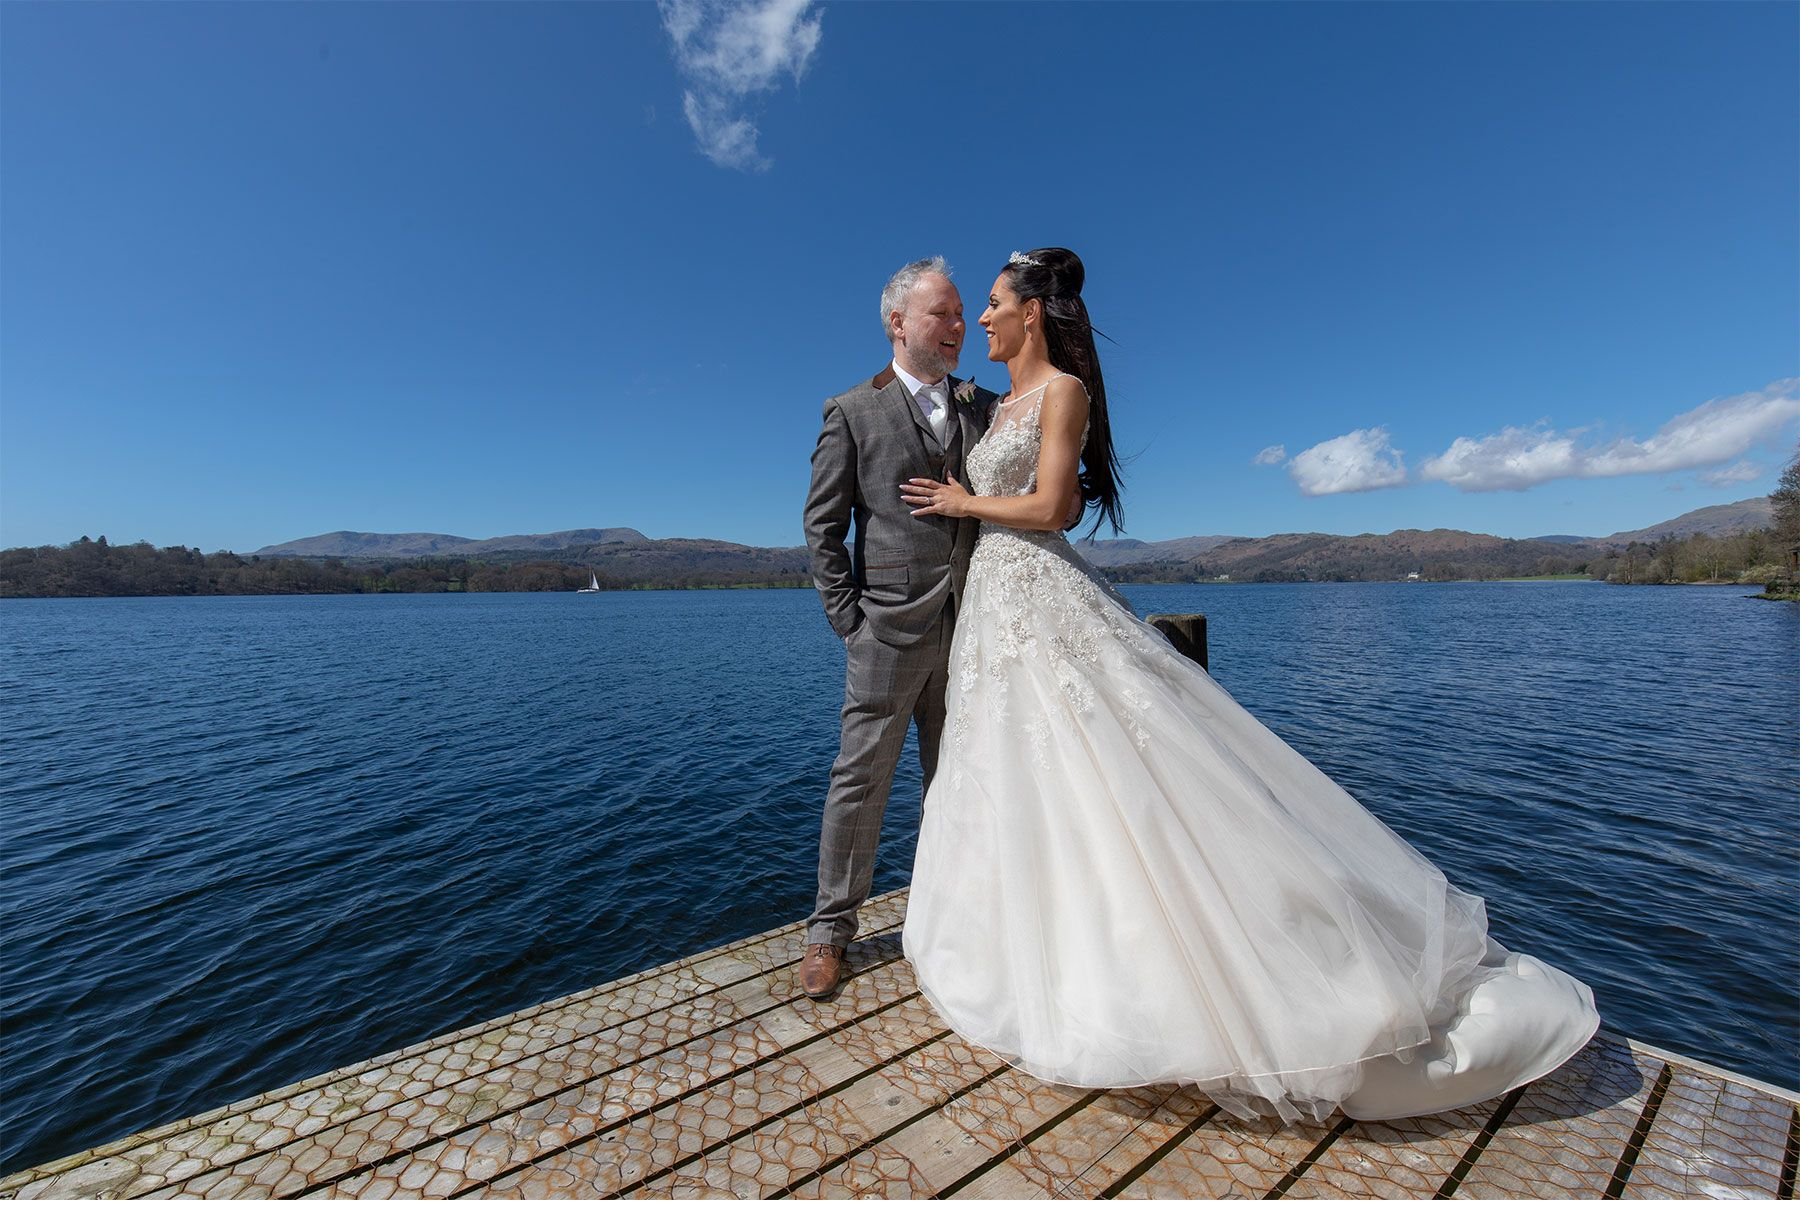 The bride and groom set against lovely blue sky on the jetty of Lake Windermere